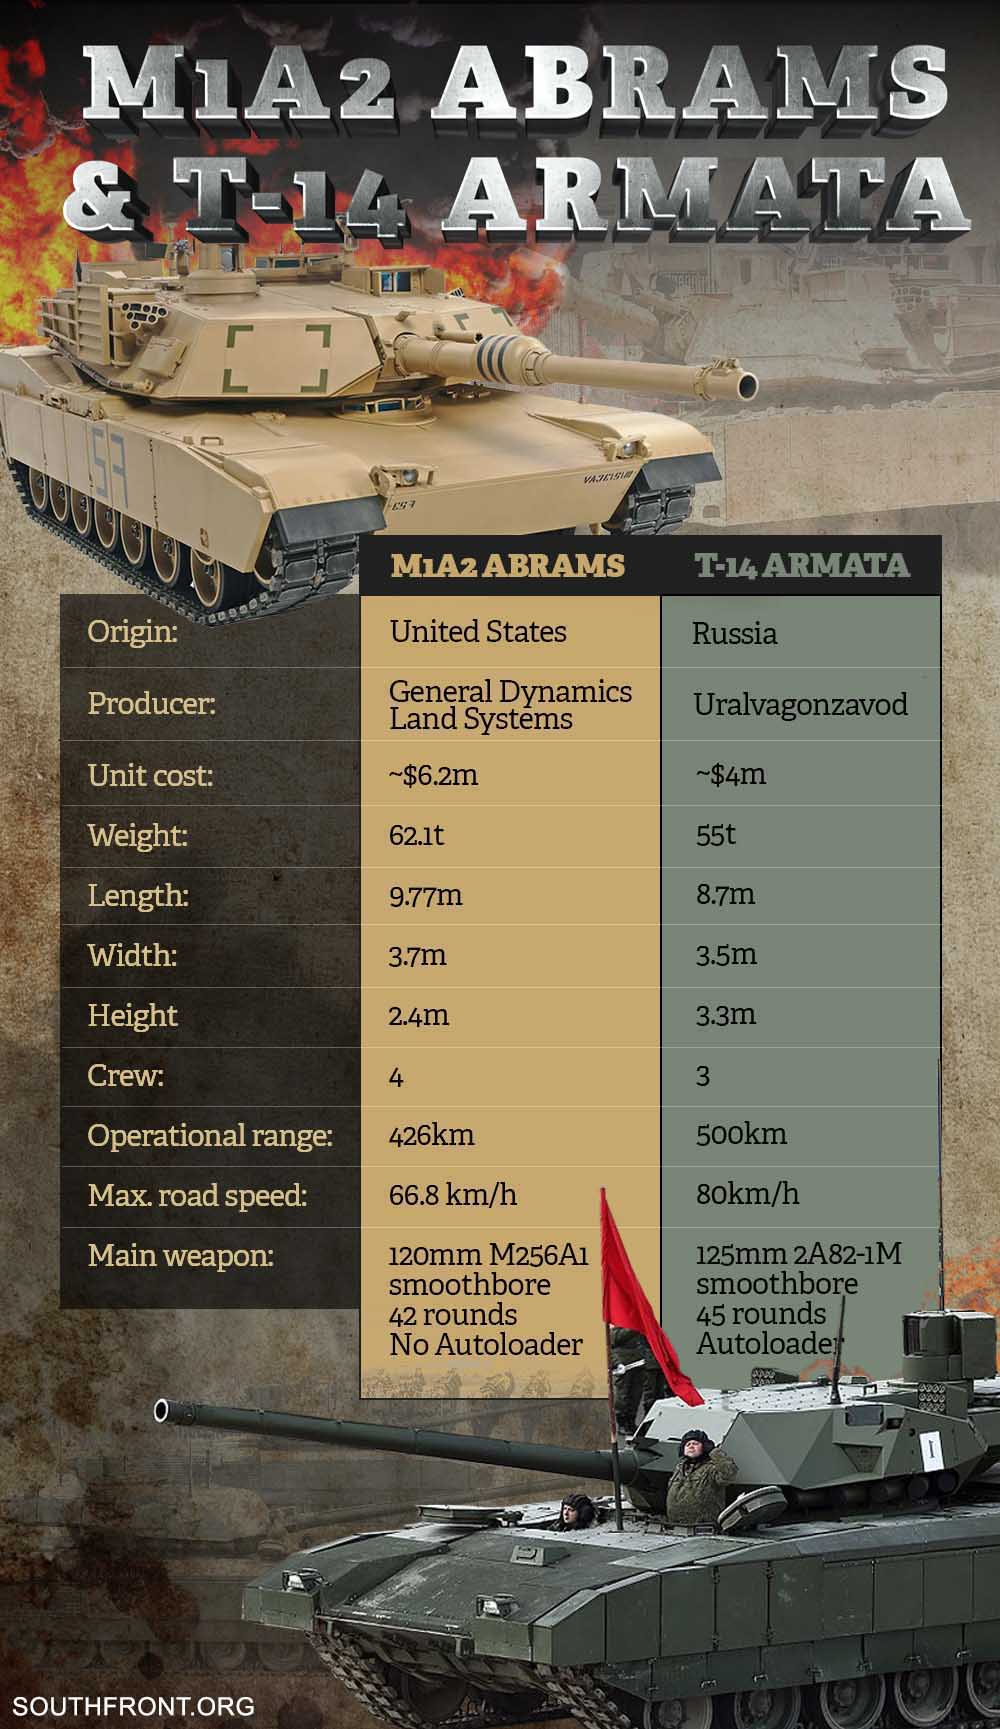 Poland To Purchase Hundreds Of U.S. M1A2 Abrams Tanks